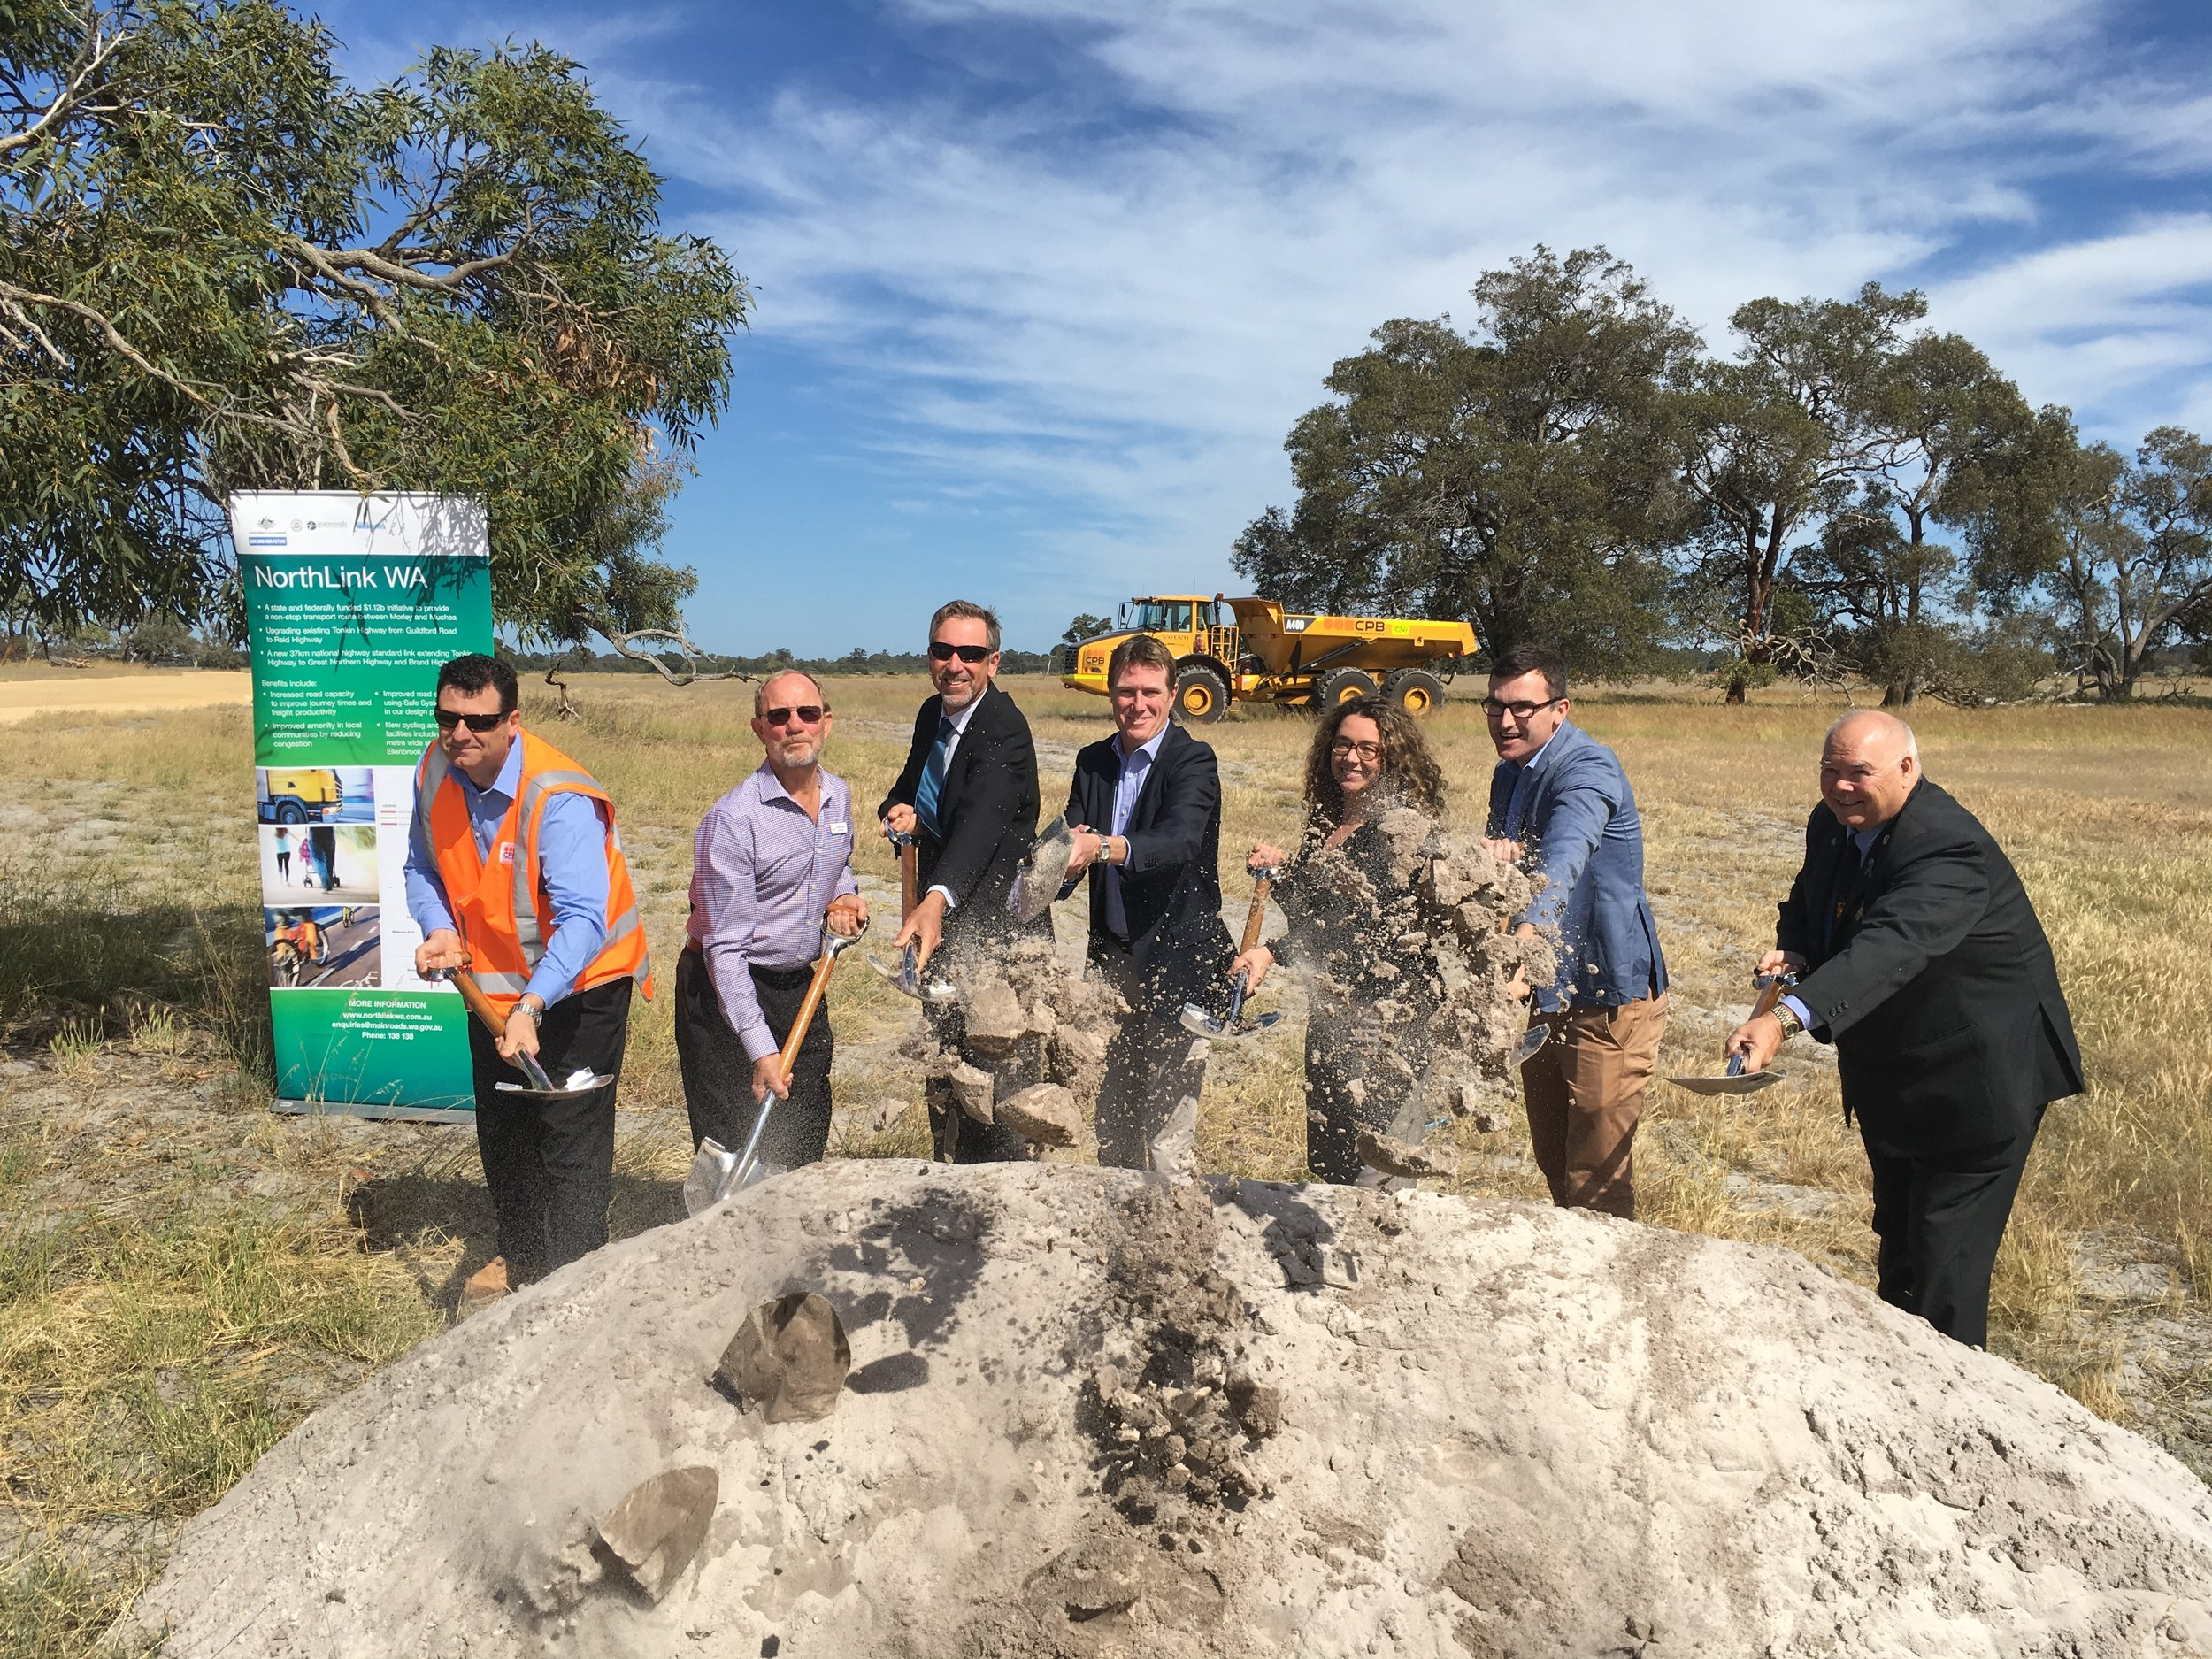 From left to right: Mr Yaquob Siddiqui, Main Roads; Mr Peter Osborne, Shire of Chittering Deputy President; Mr Rod Arnott, Senior Project Director for NorthLink WA Main Roads; MHR Christian Porter; Jessica Shaw MLA, Member for Swan Hills; John Carey MLA, Parliamentary Secretary to the WA State Minister for Transport; Cr David Lucas, Mayor City of Swan.